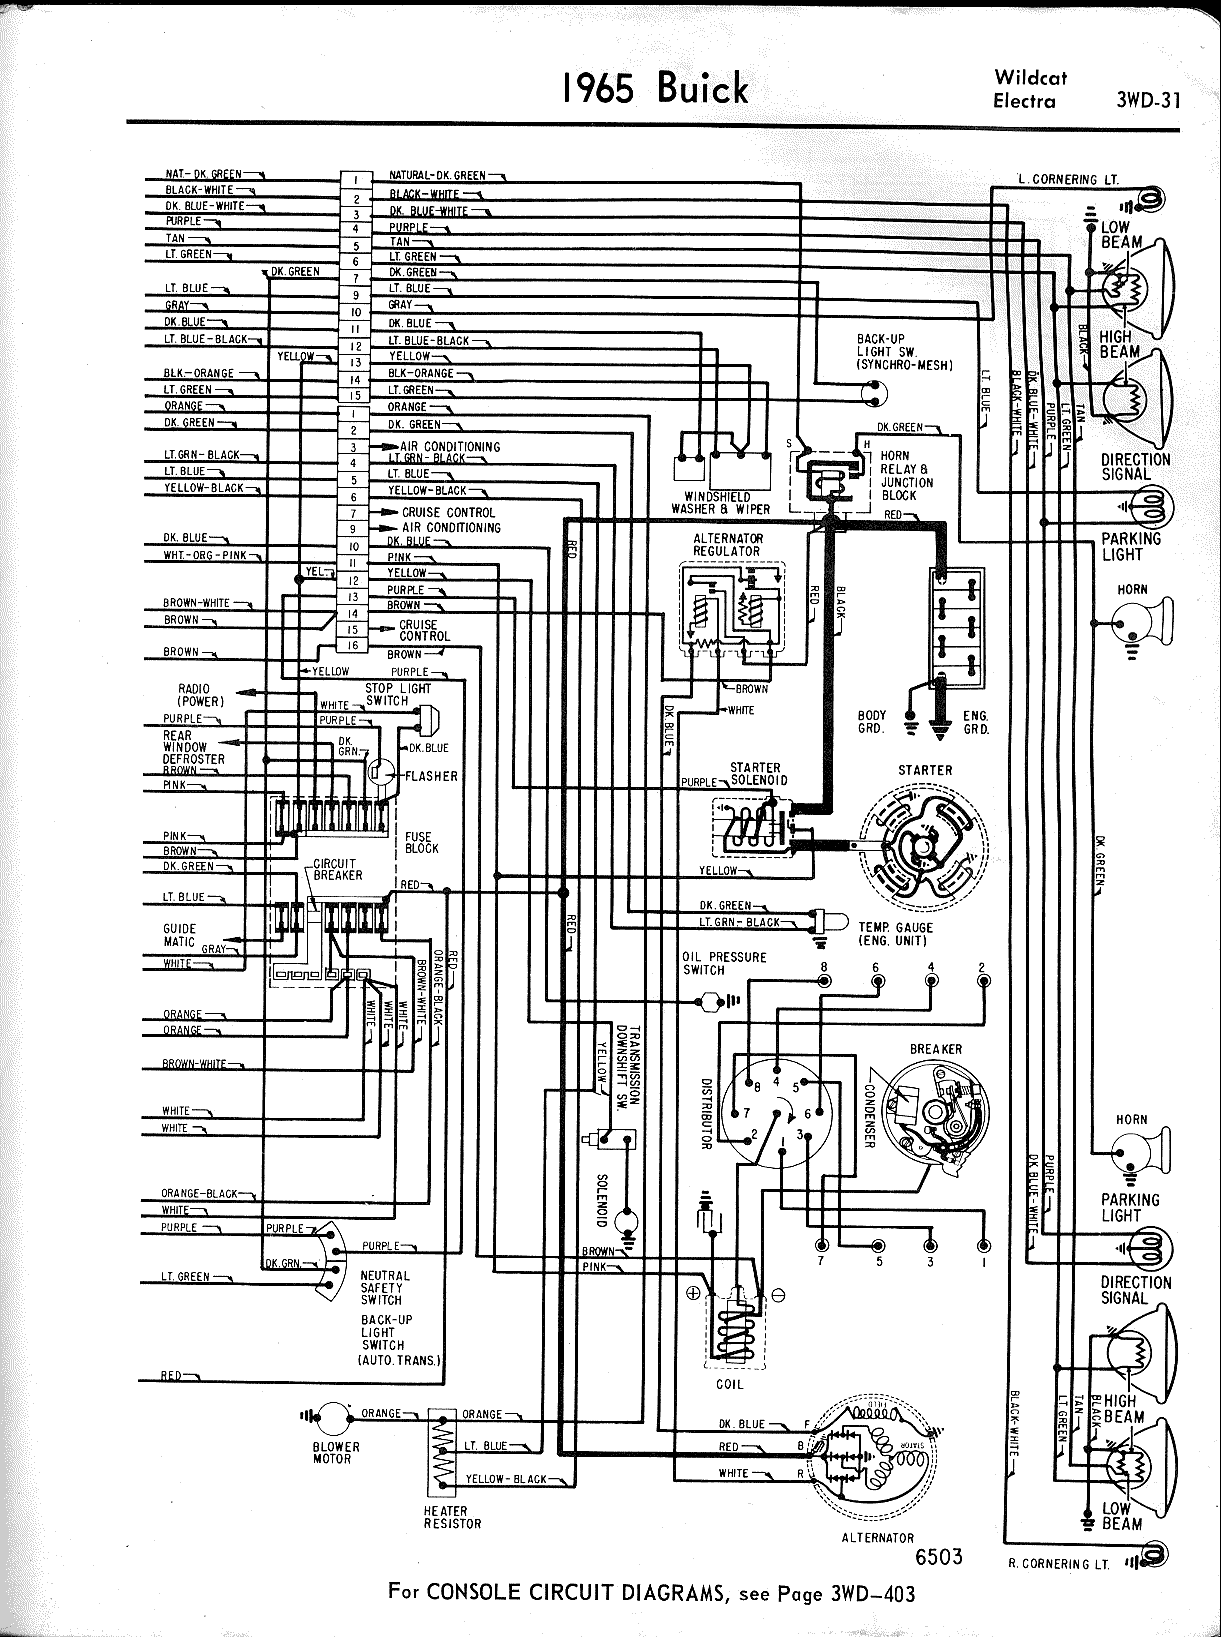 53 Buick Wiring Schematic Real Diagram 70 Riviera Auto Parts Catalog Arduino Simple Schematics